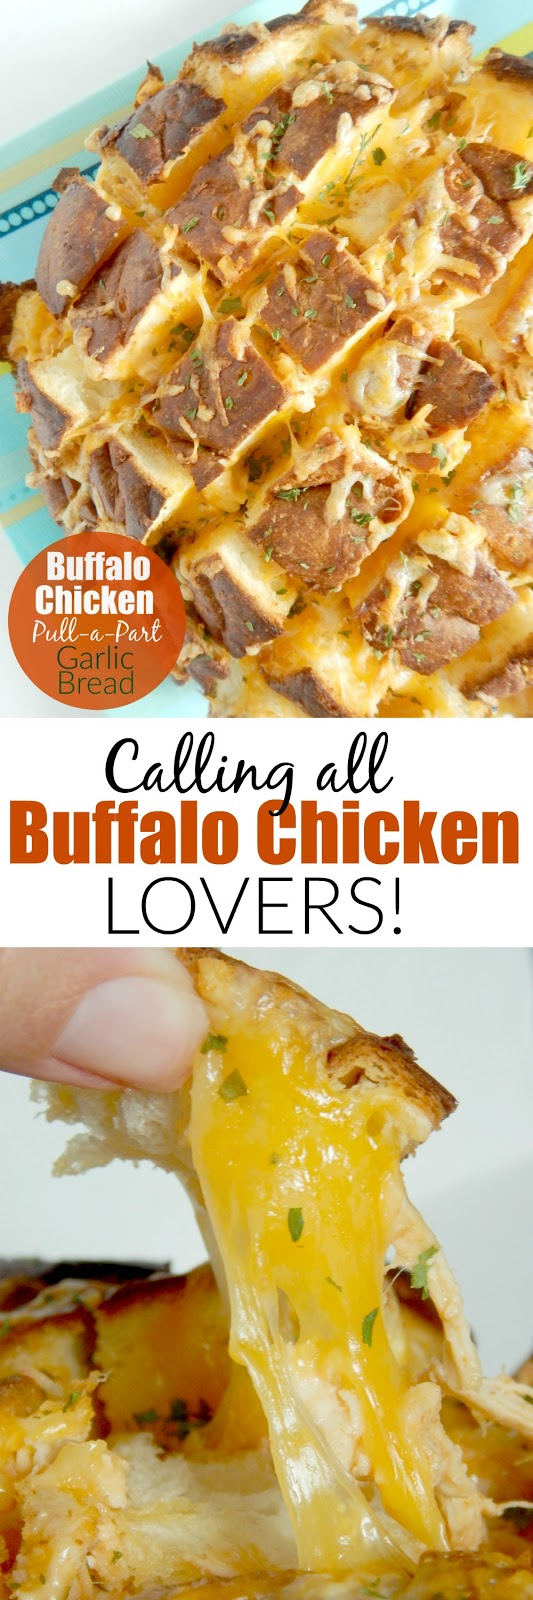 Buffalo Chicken Pull-a-Part Garlic Bread...the ultimate party appetizer for all the buffalo sauce lovers! (sweetandsavoryfood.com)